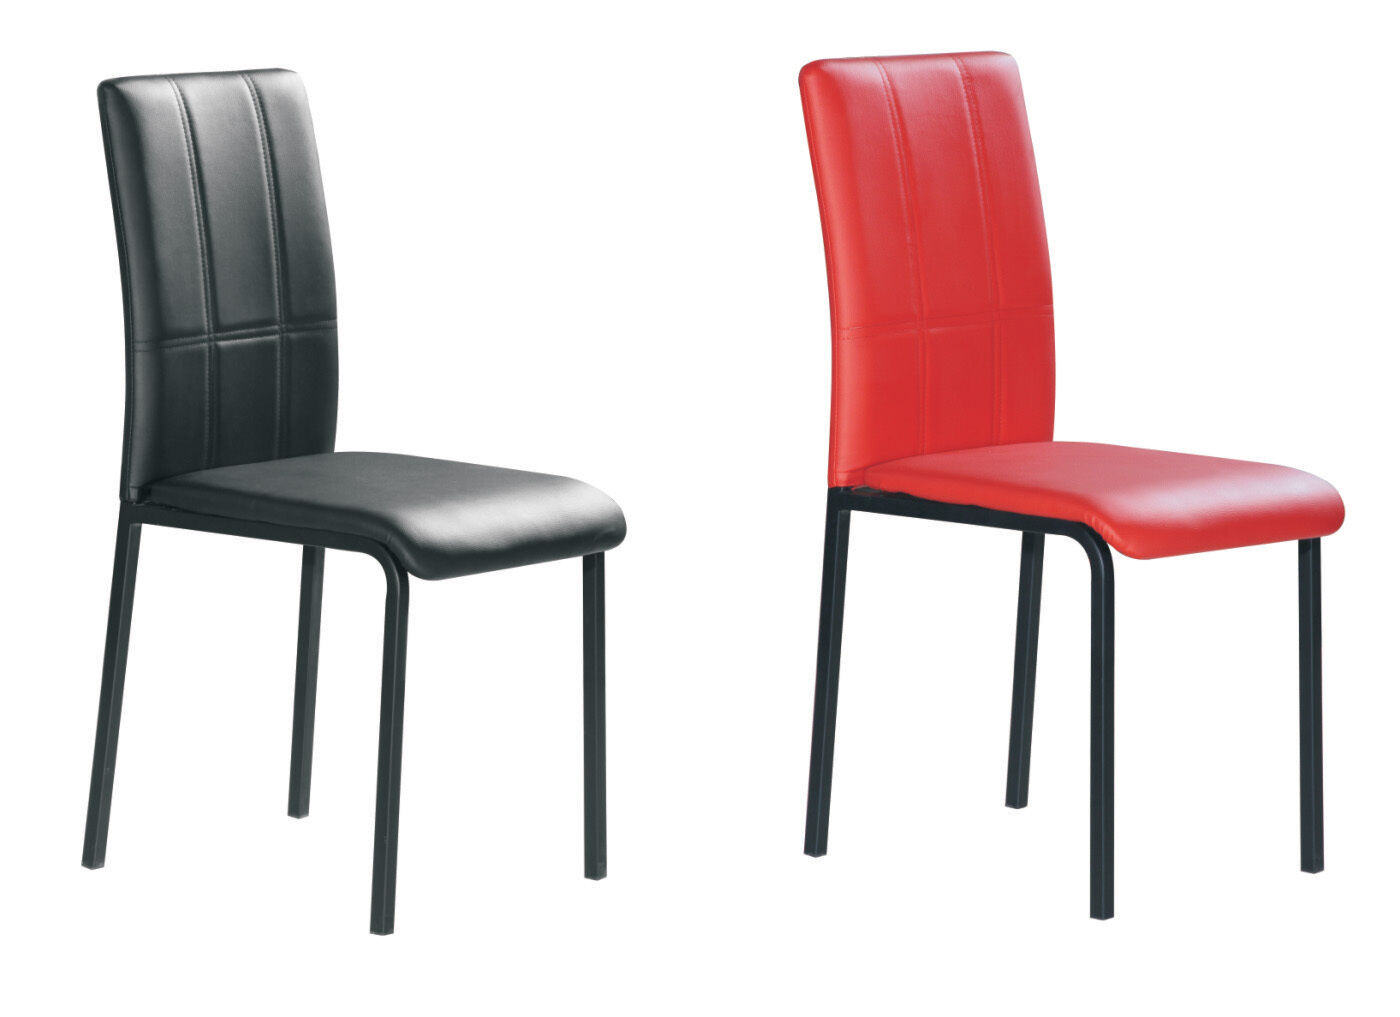 Dining chairs faux leather foam padded red and black with for Faux leather dining chairs